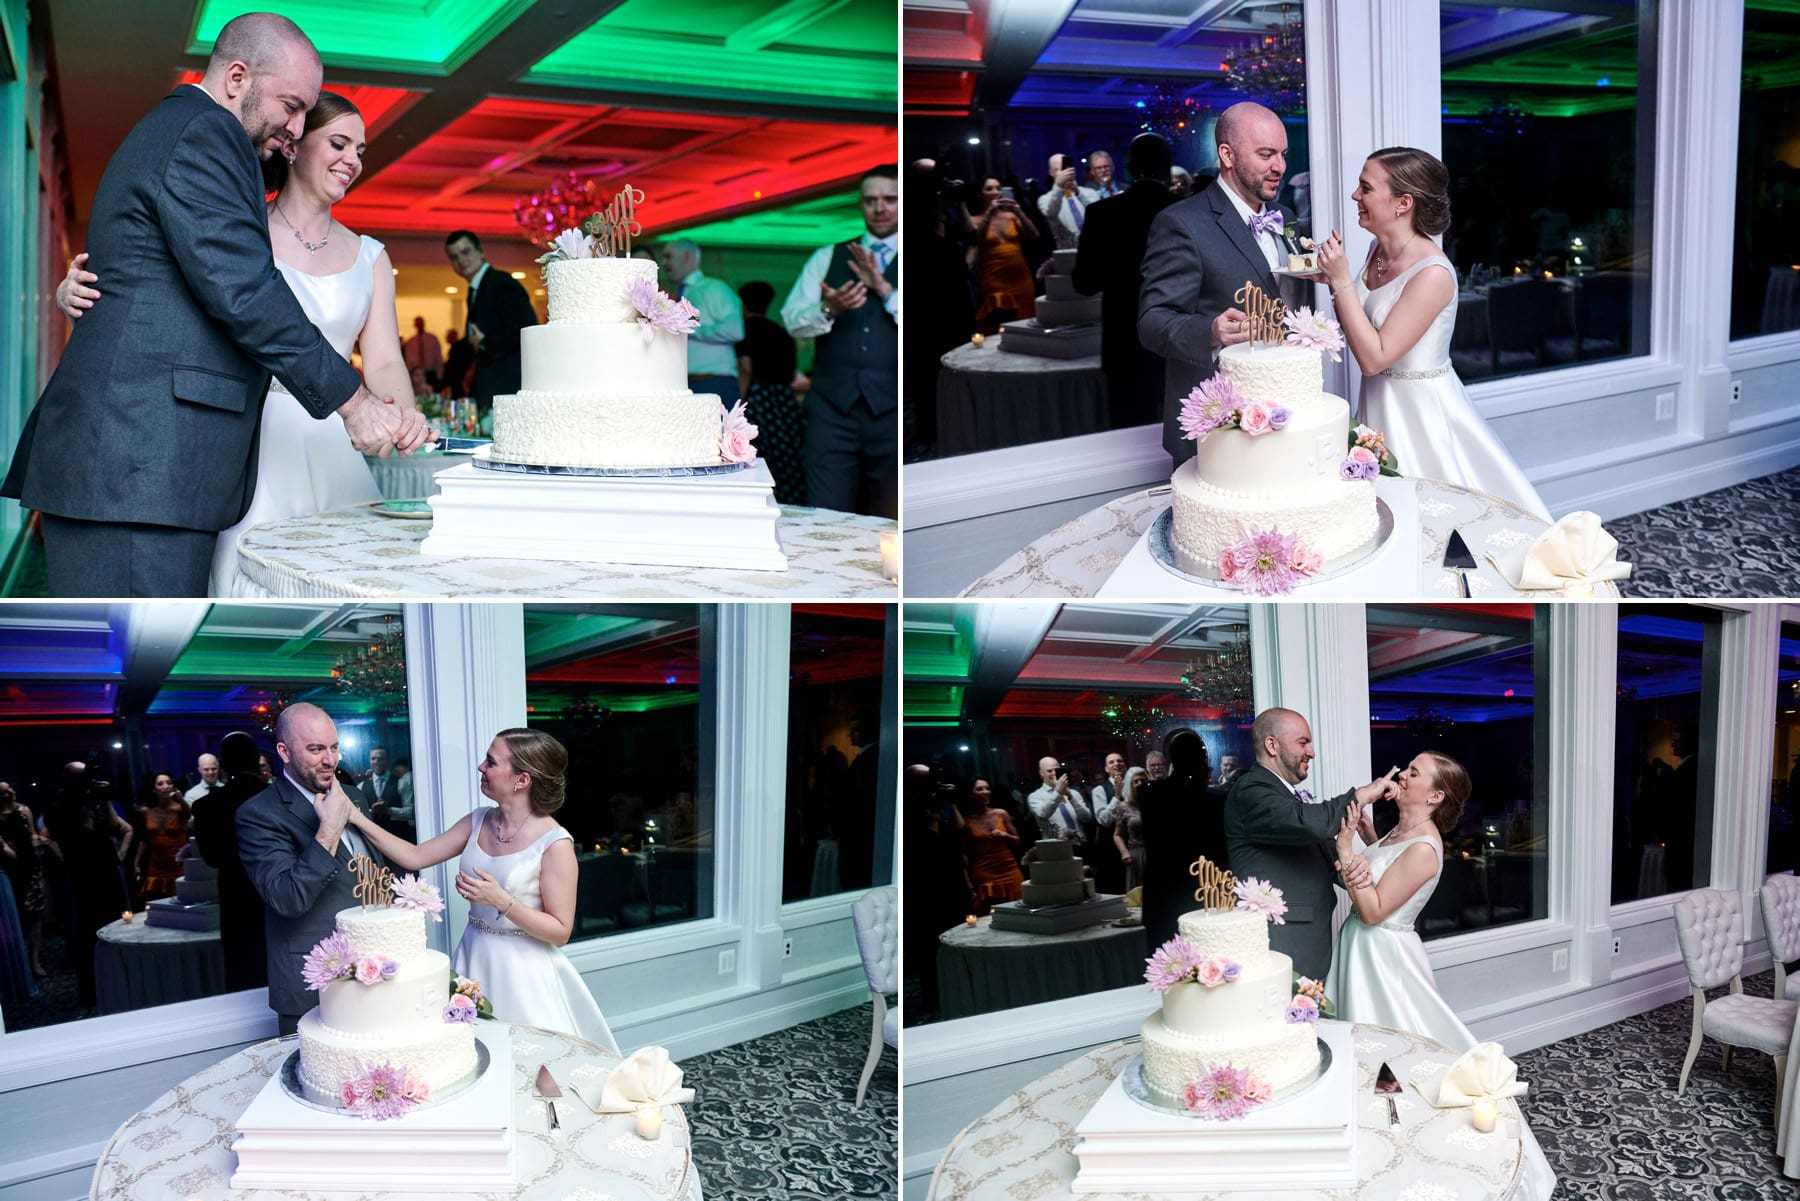 wedding cake cutting photos at The Mill lakeside Manor